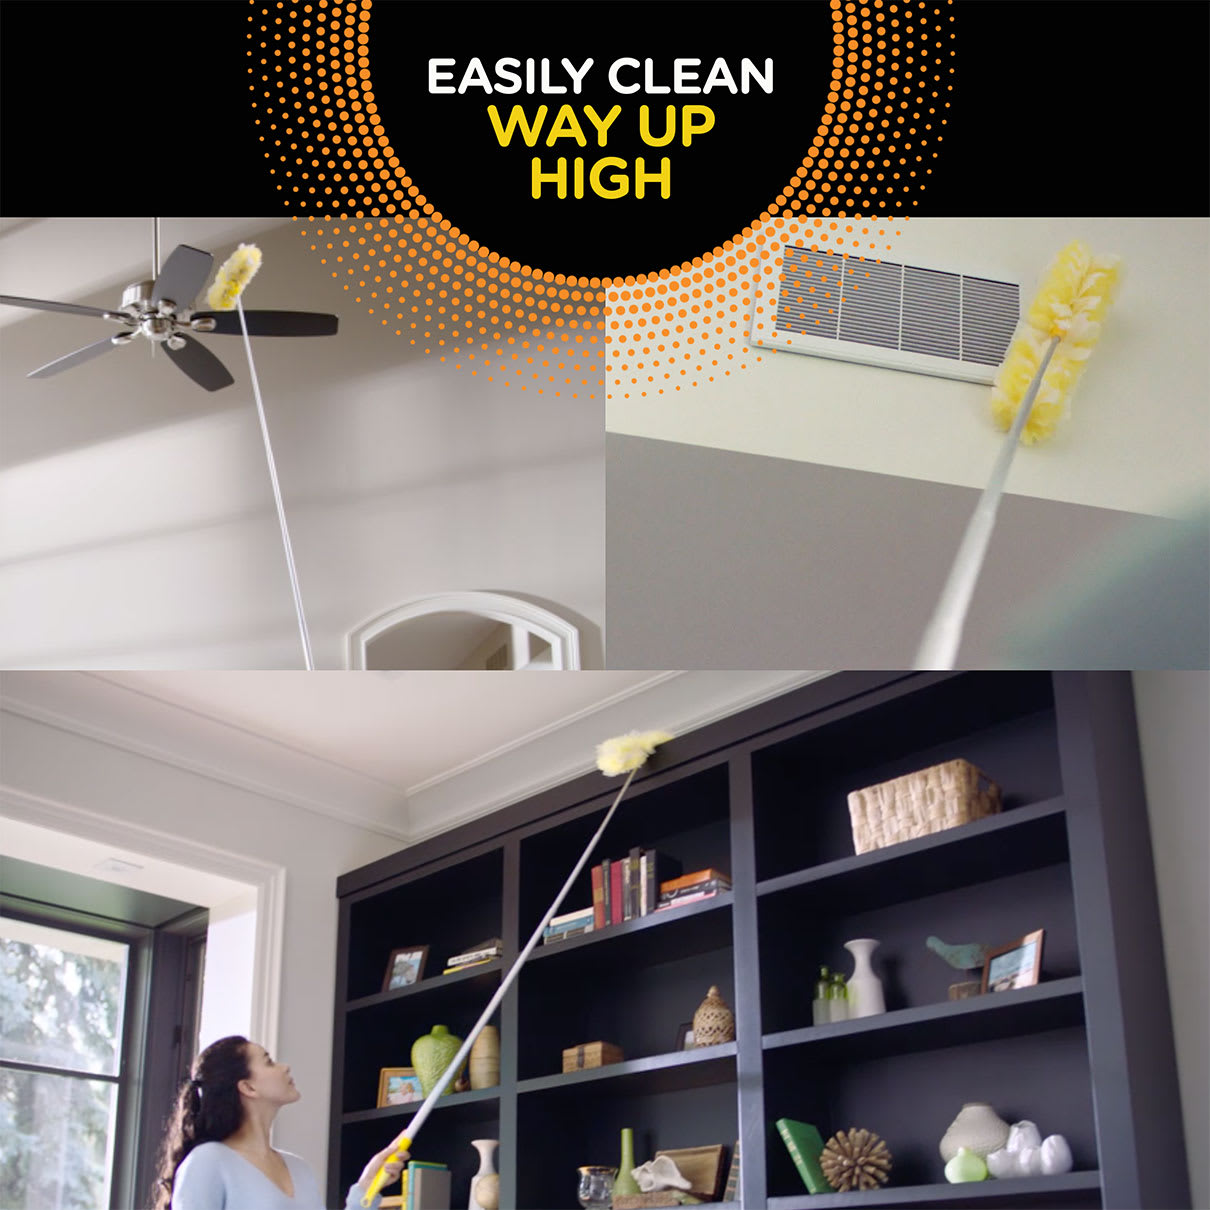 Swiffer Duster Easily Clean Way Up High